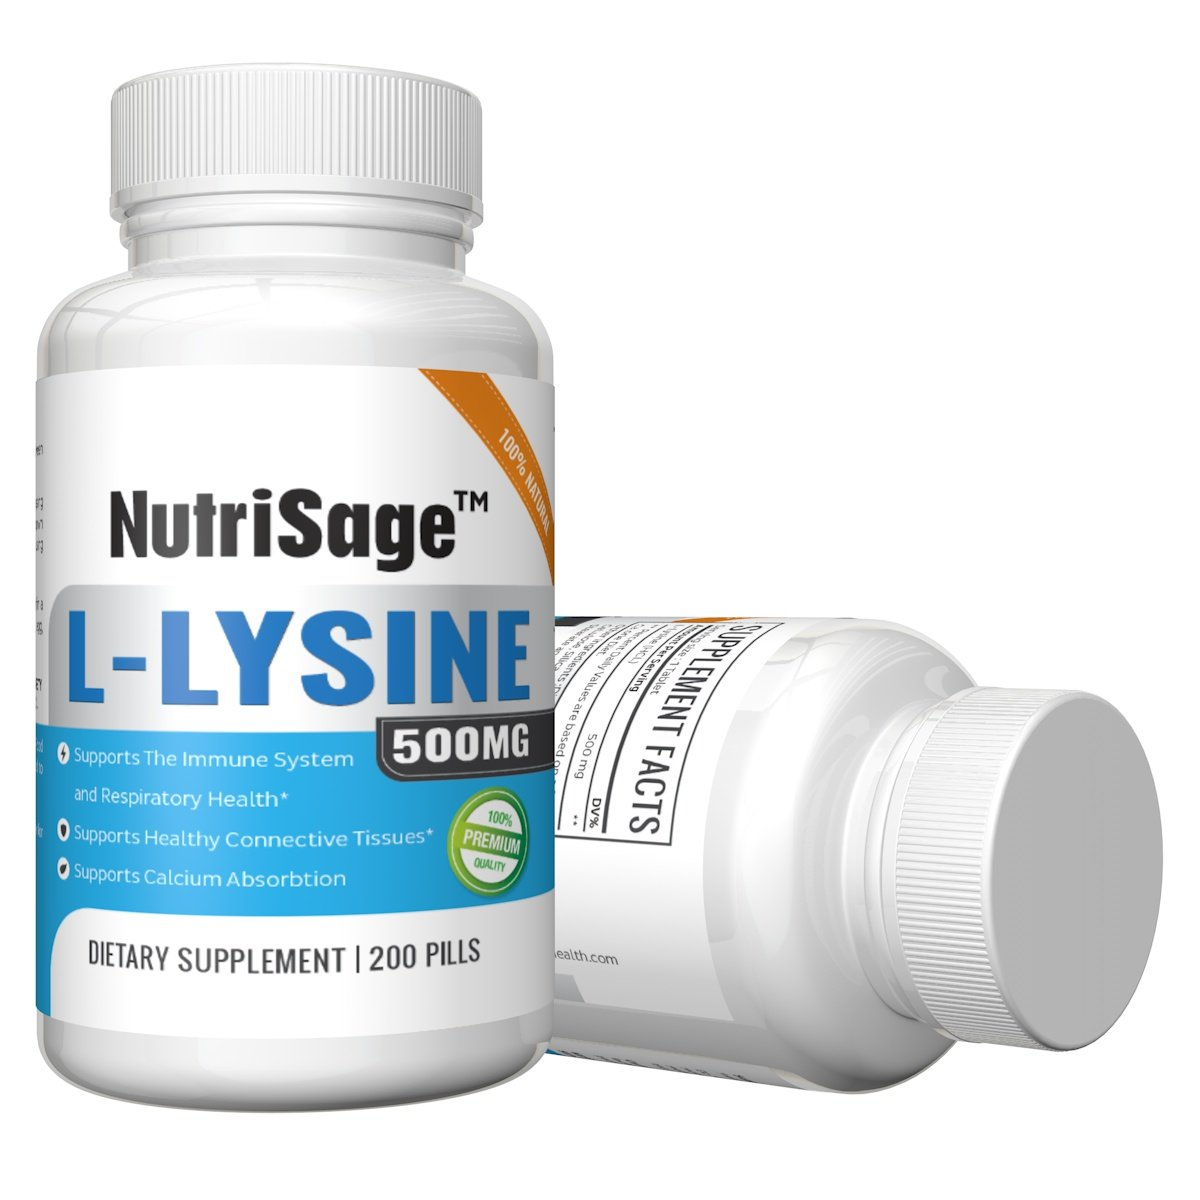 Premium Super L Lysine - 500mg Amino Acid Tablets For Cold Sore Care, Shingles, Immune Support & More - 200 Count Per Bottle by NutriSage (Image #5)